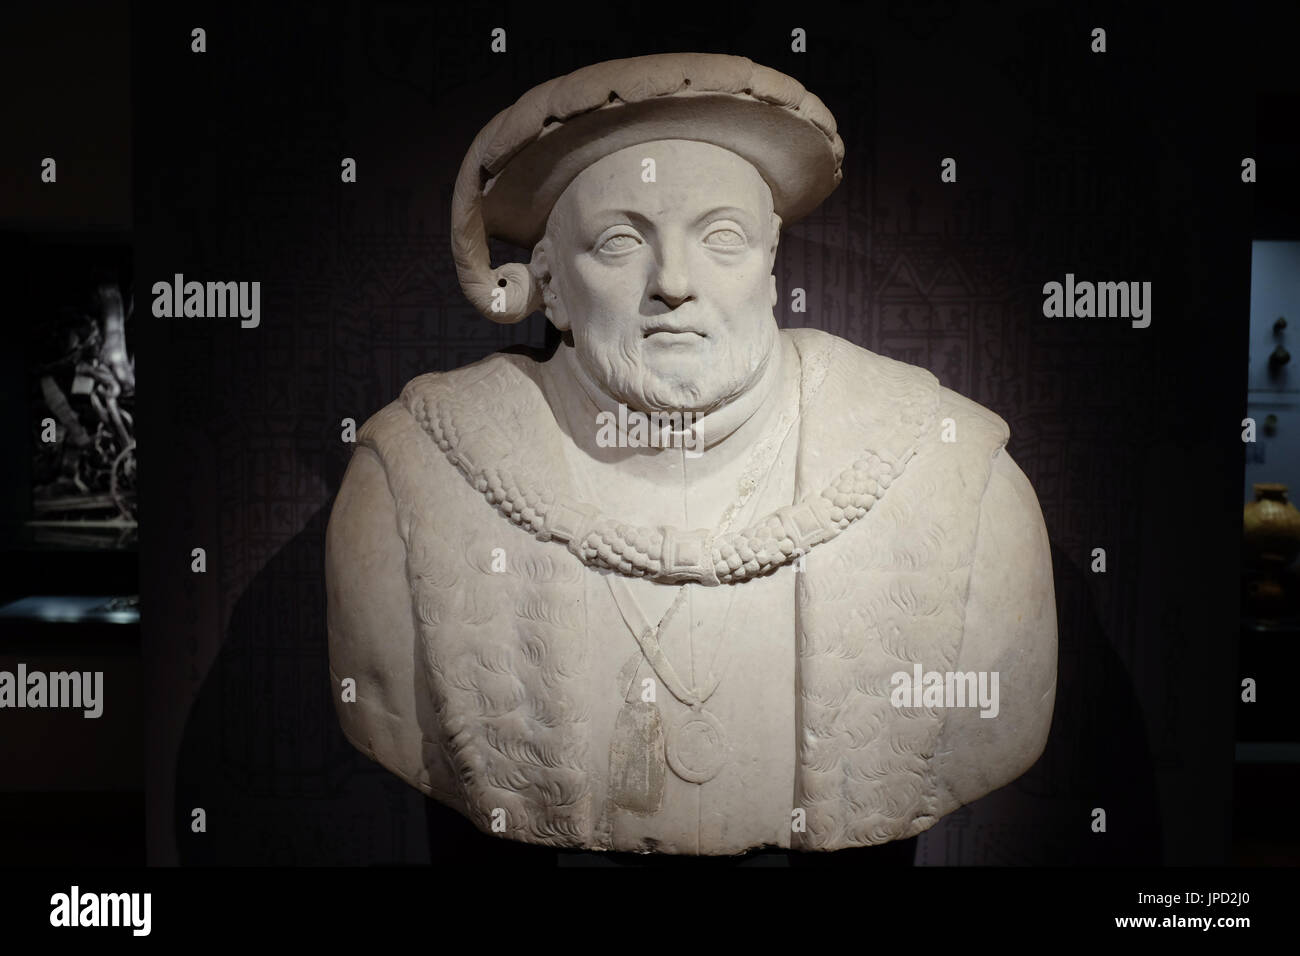 A marble sculpture of King Henry VIII of England, on display at the Ashmolean Museum in Oxford, England. Stock Photo